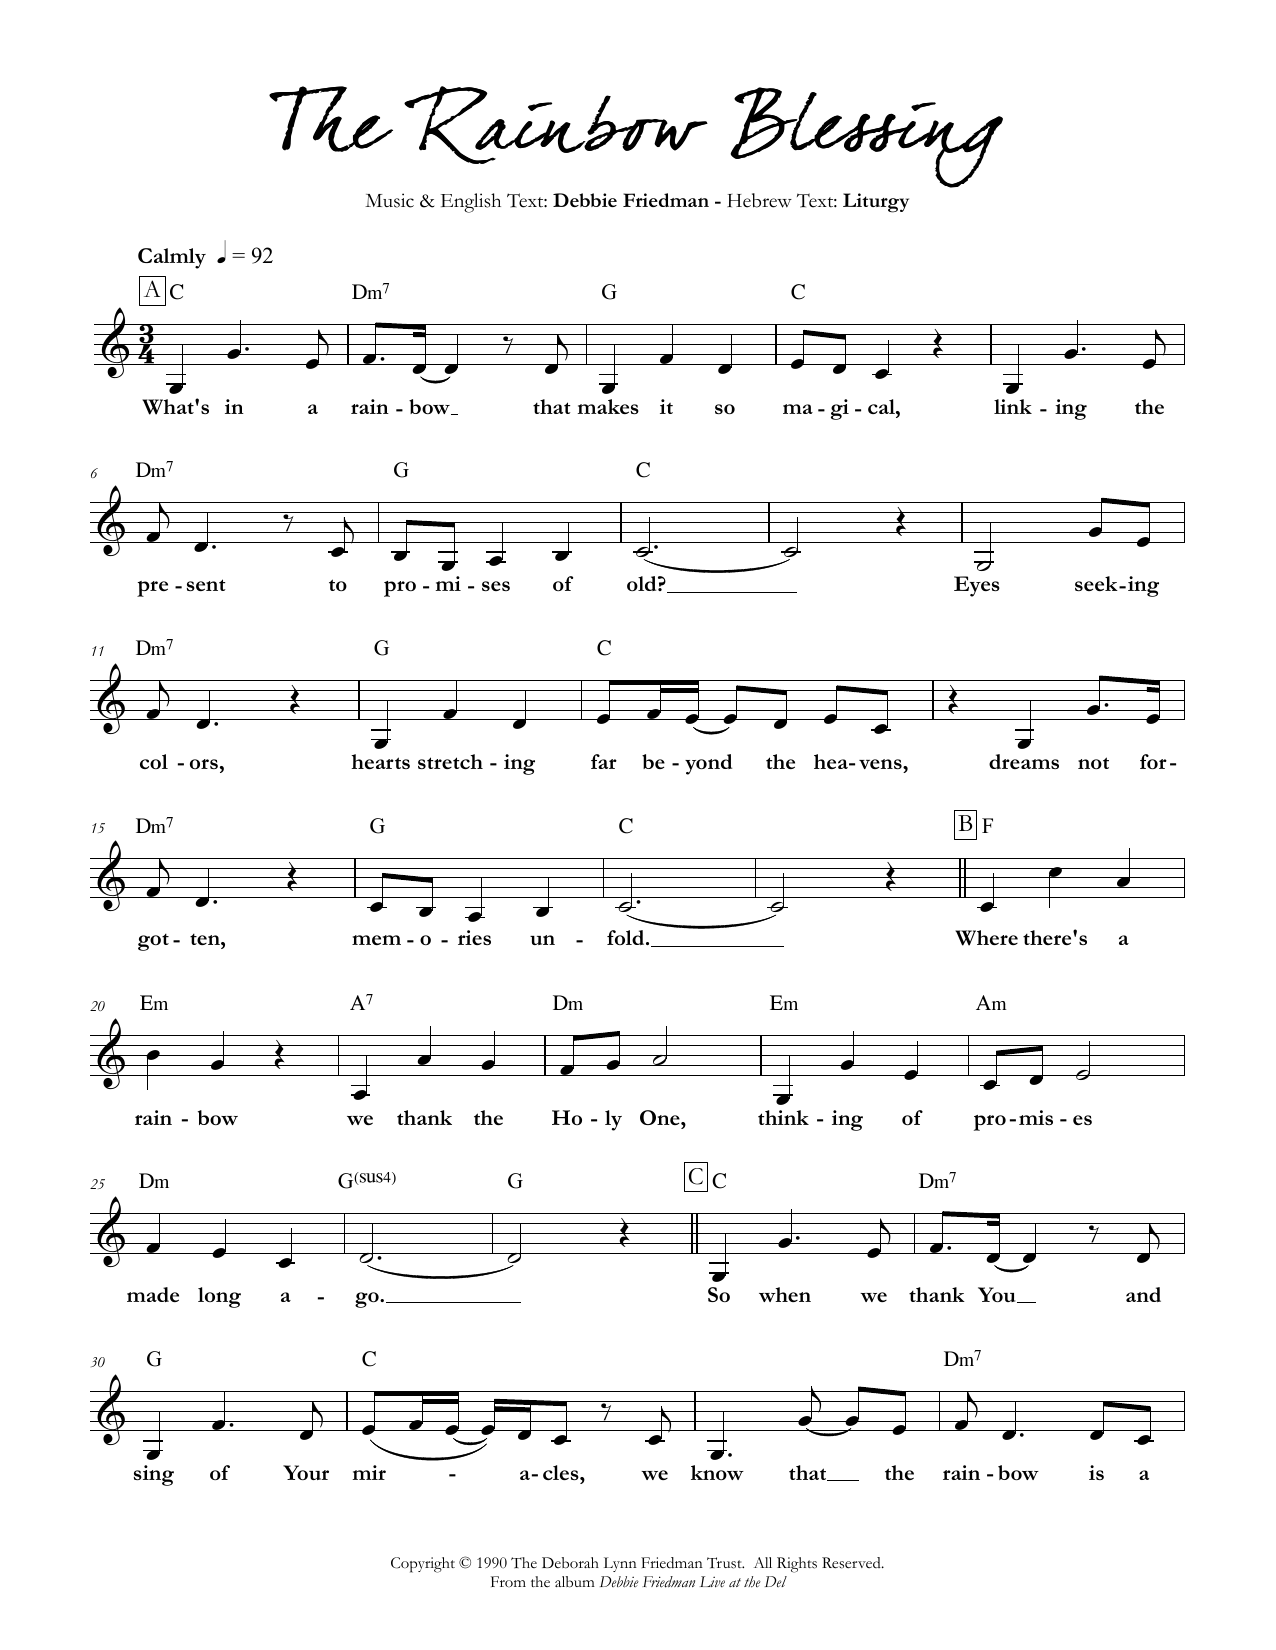 The Rainbow Blessing Sheet Music